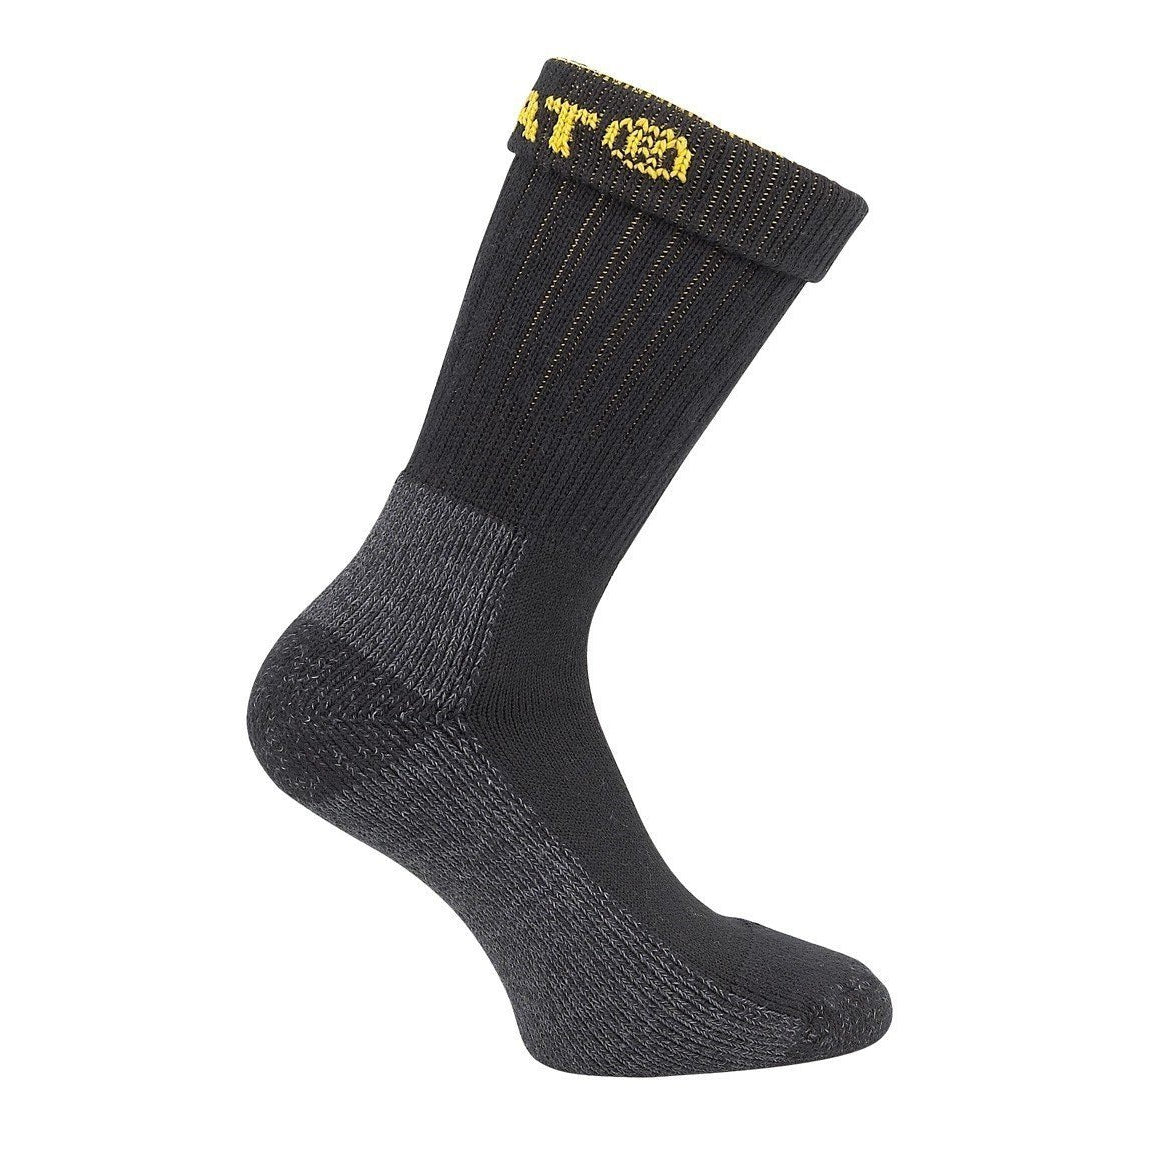 Caterpillar Industrial Socks